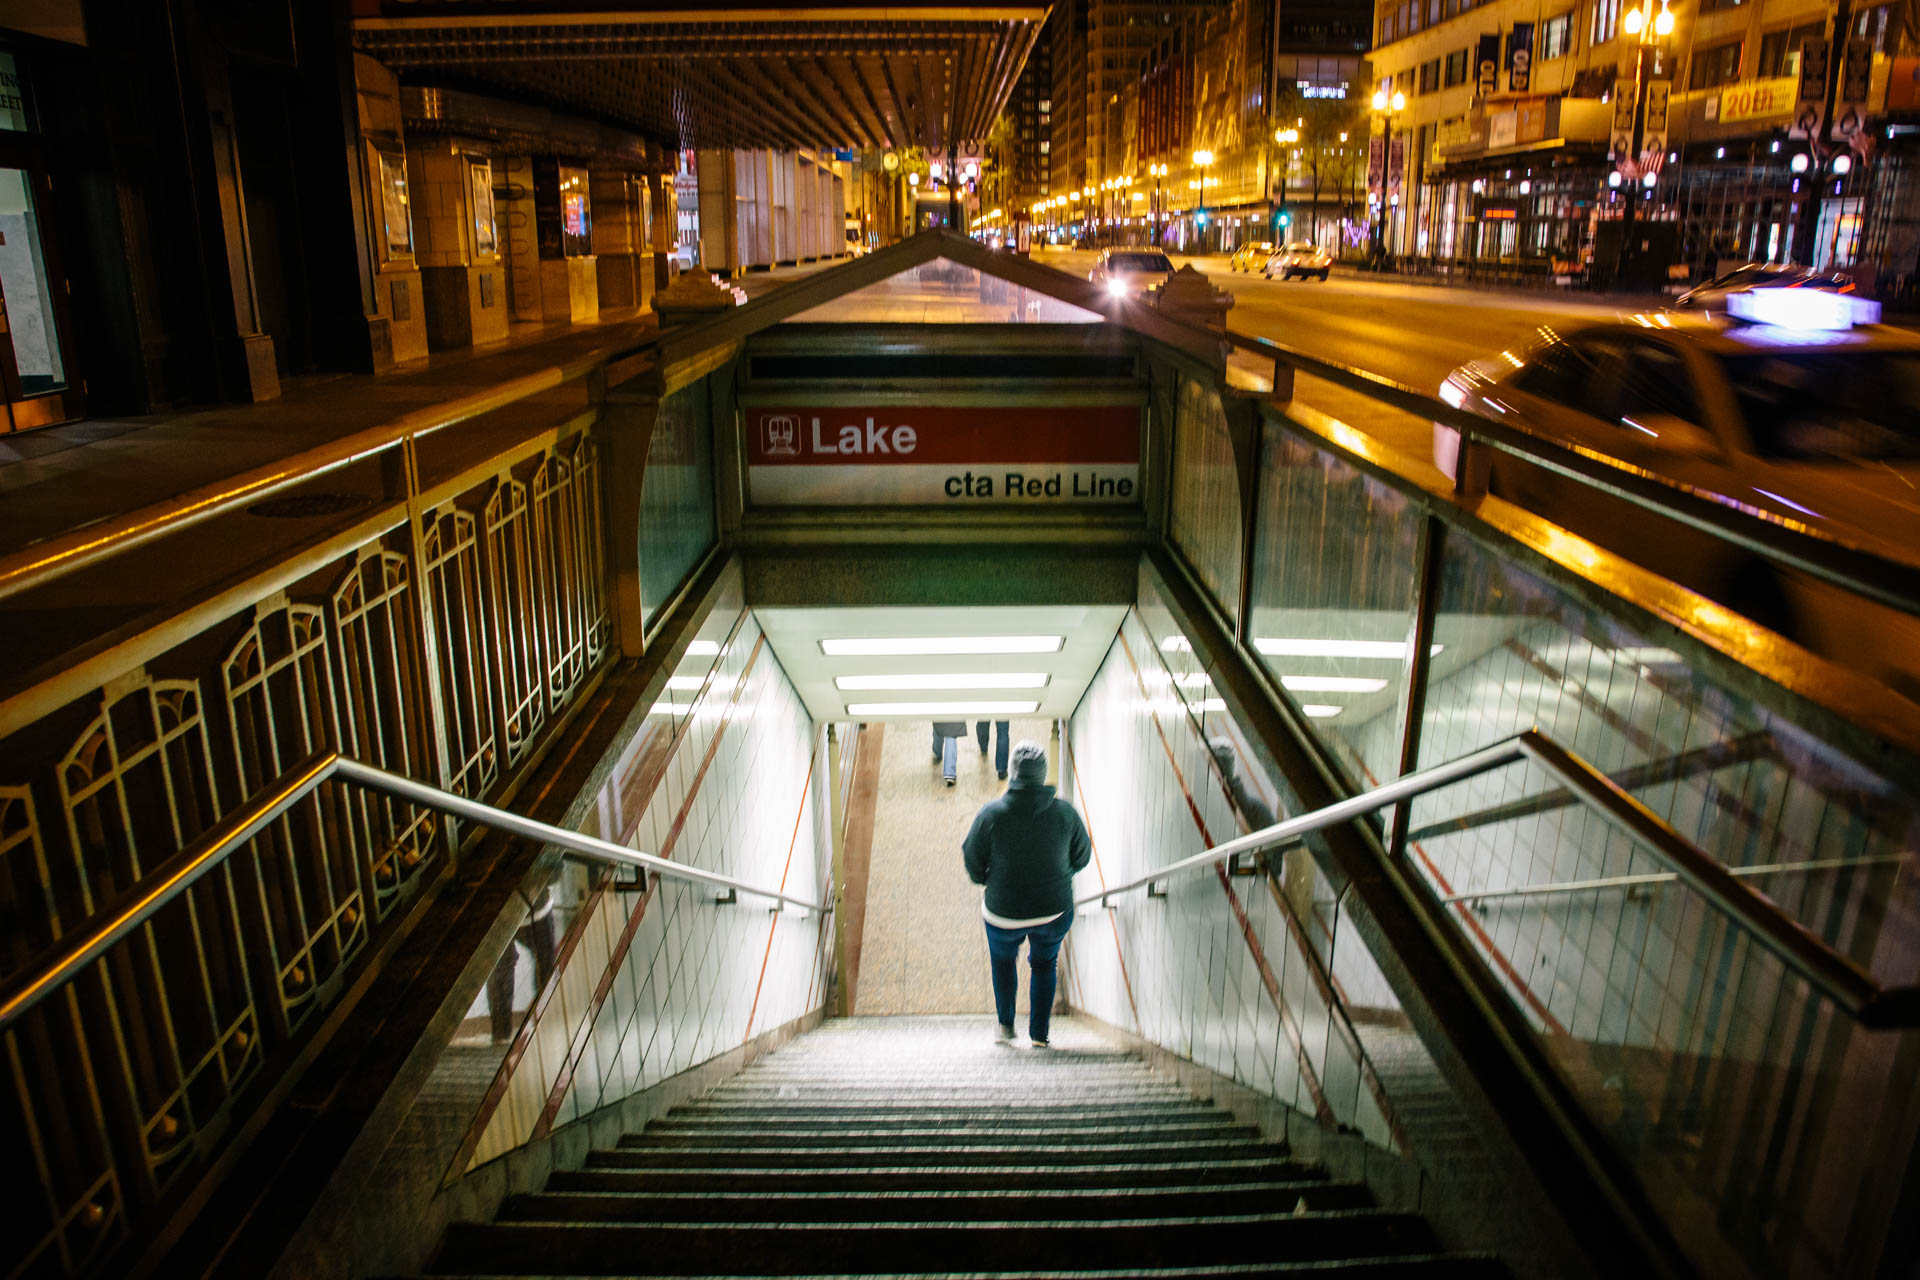 cta_red_line_subway_station_entranceuntitled